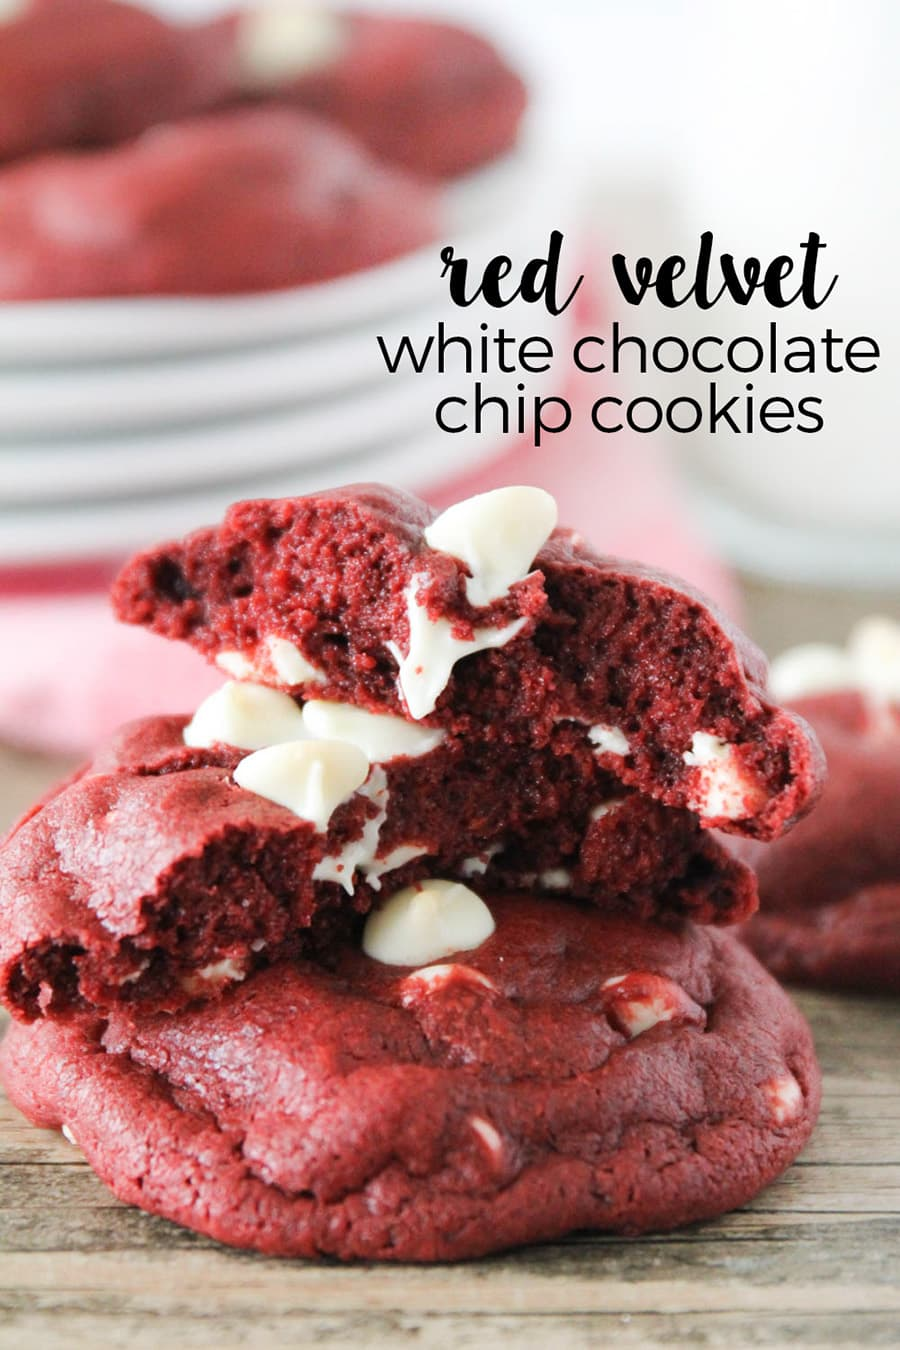 Red Velvet White Chocolate Chip Cookies - a red velvet cookie, loaded with white chocolate chips, and underbaked to perfection! SO YUMMY!